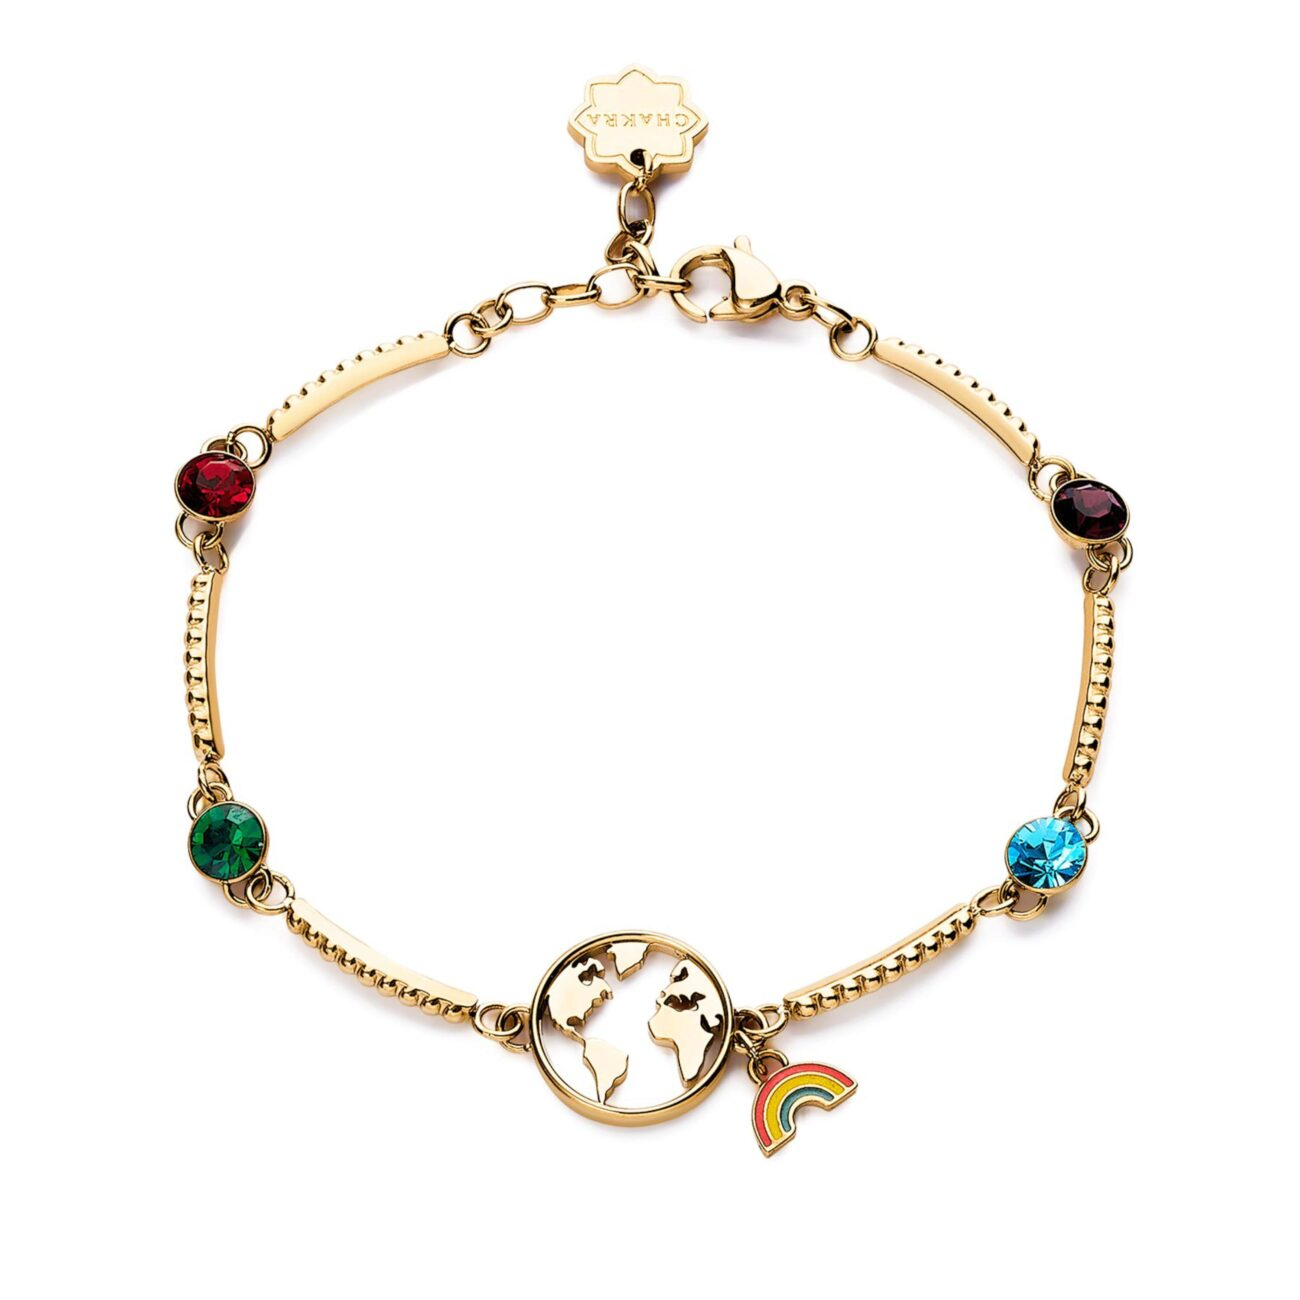 WORLD: TRAVEL, DREAM, INITIATIVEGo where others have never gone before. Travel with your heart and mind and discover remote places you never knew existed. The path you travel will leave its mark on your soul.316L stainless steel bracelet, gold pvd with world, enamel and coloured crystals.